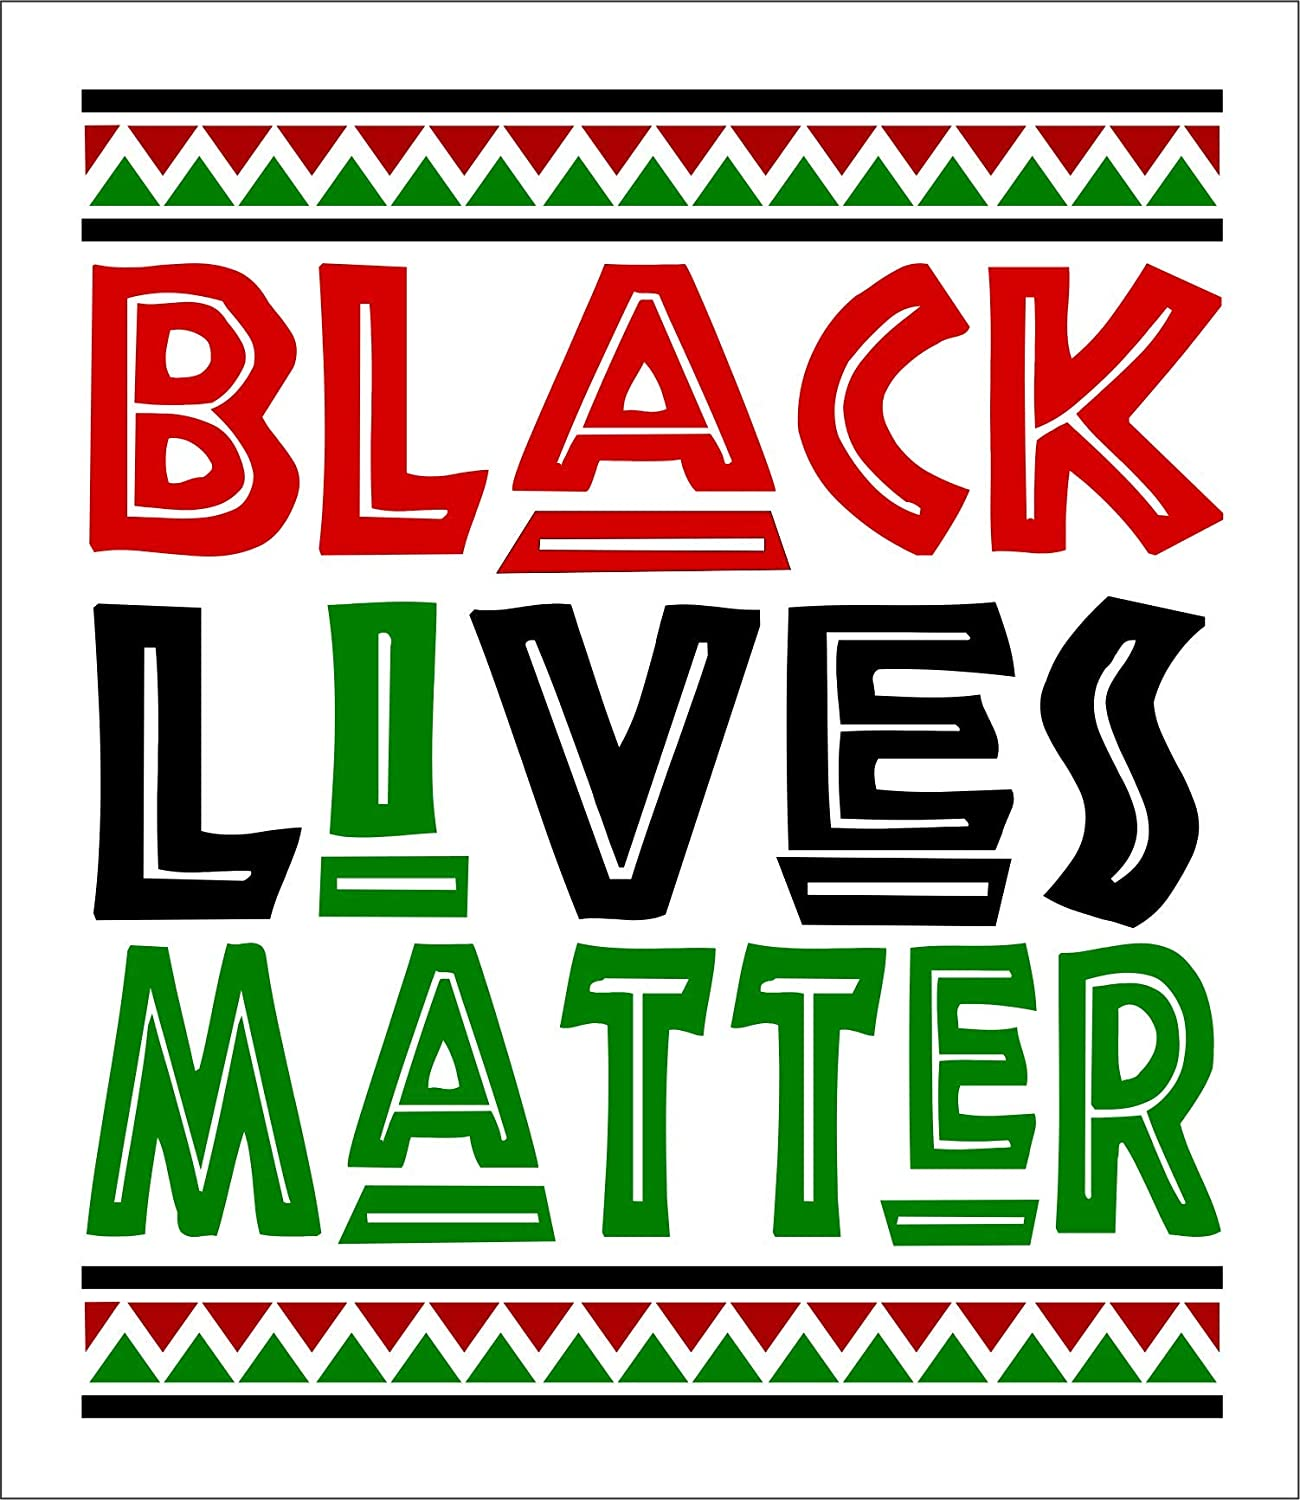 Black Lives Matter BLM Anti Racism Movement Small Bumper Sticker or Laptop Decal 3.25-by-3.75 Inches